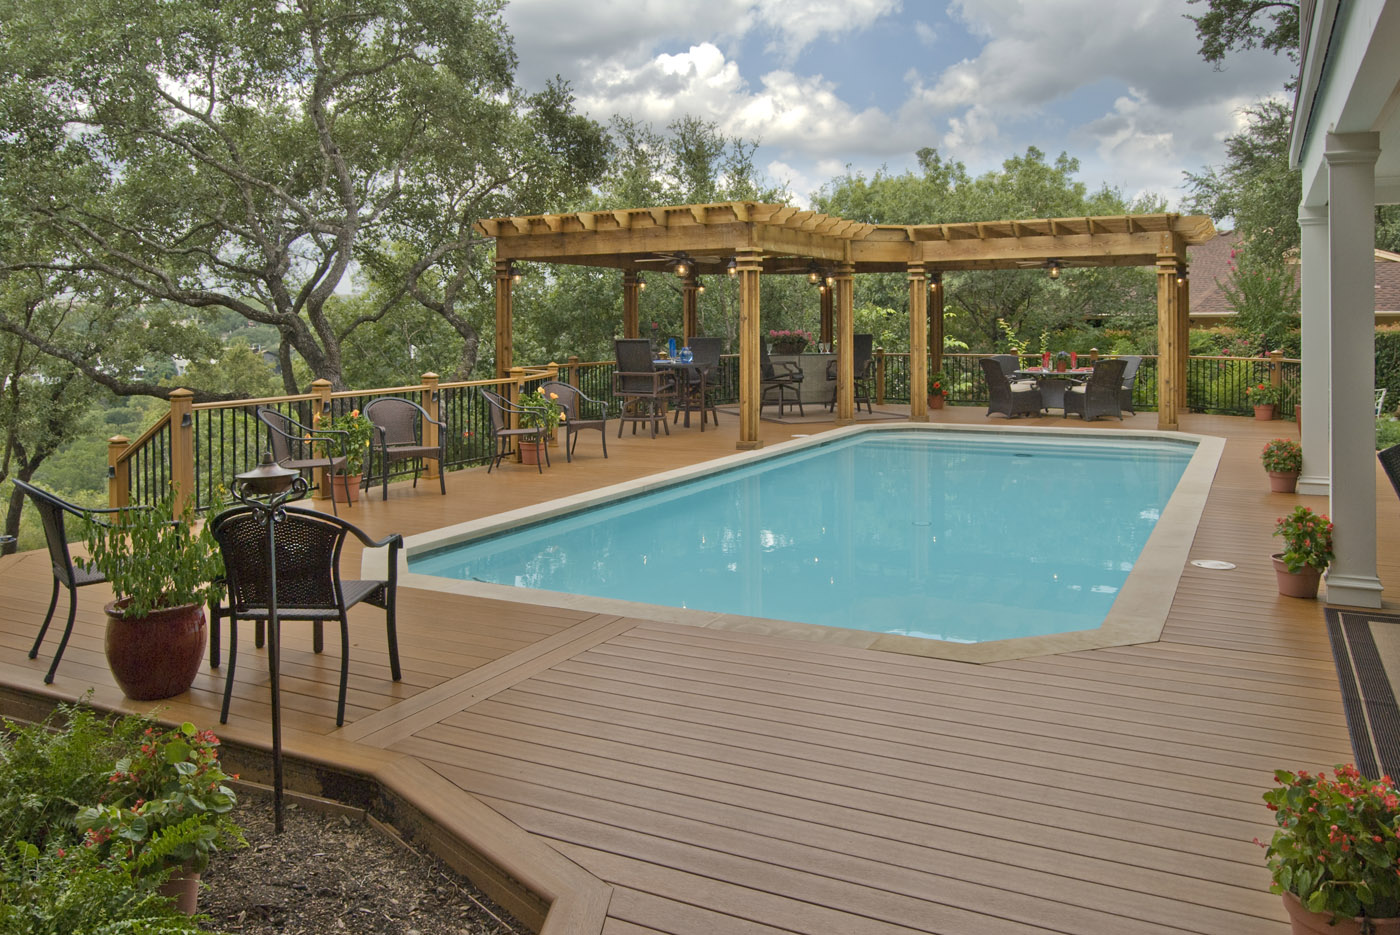 AZEK Pool Deck in Kernersville Creates Summer Fun in the Sun